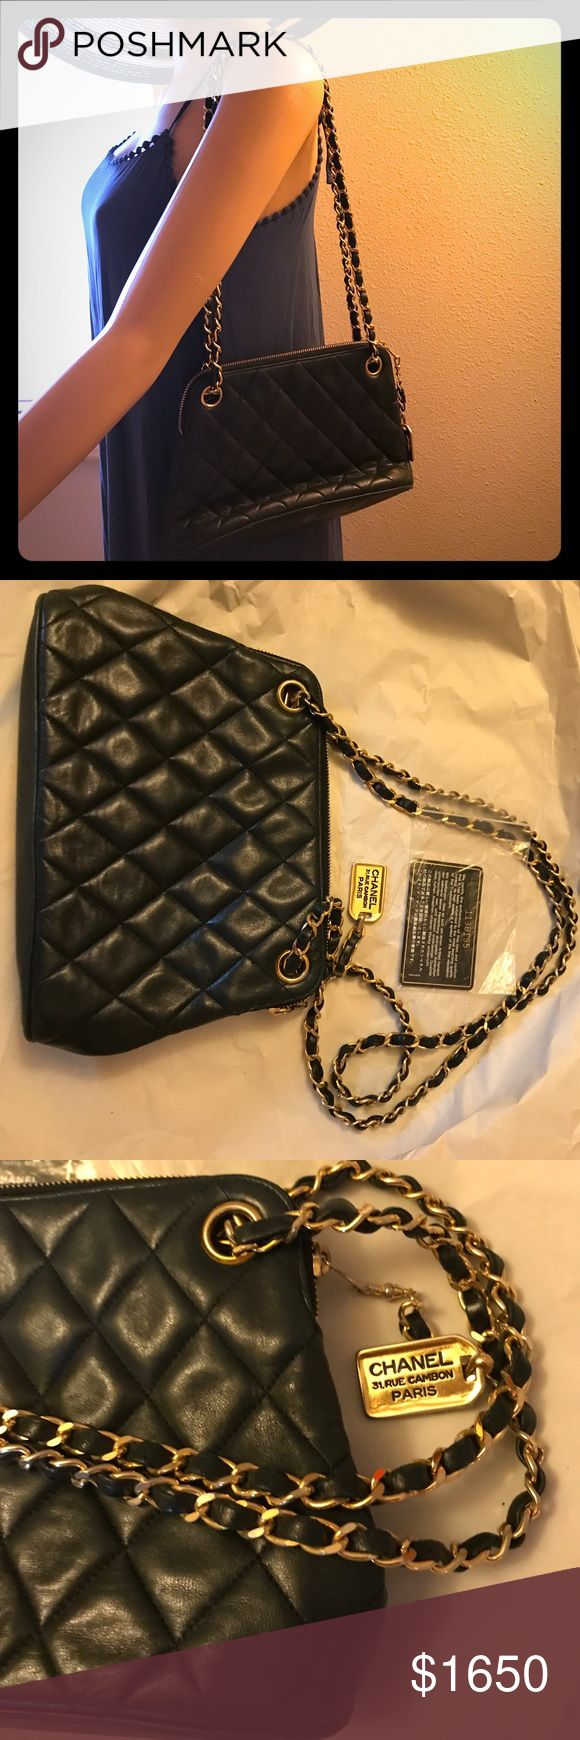 AUTH Chanel Black Lambskin Shoulder Bag. AUTH Chanel Black Quilted Lambskin Leather Chain Shoulder Bag. Serial number is 1136195.  Made in Italy.  Leather has wrinkles, little discoloration, scuffing, and scratches. Color: Black; Bag length: 9.4in; Height: 6.2in; Depth: 3.1in. Strap drop: 11.4in.   Come with Authenticity card.  Price will be reduced with PayPal. CHANEL Bags Shoulder Bags